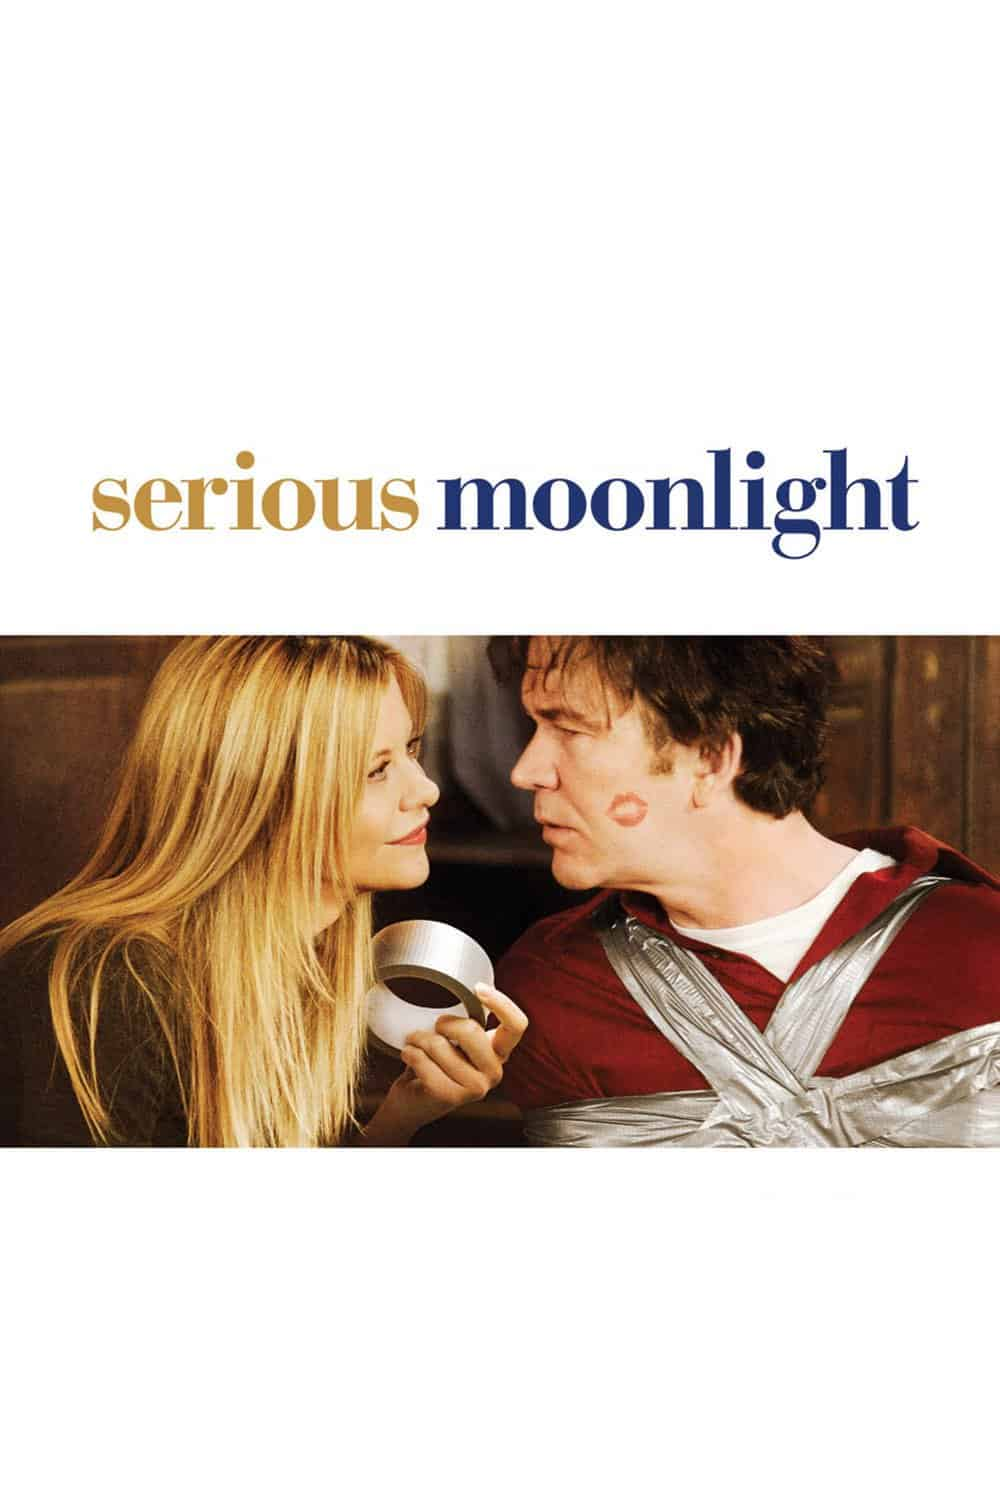 Serious Moonlight, 2009